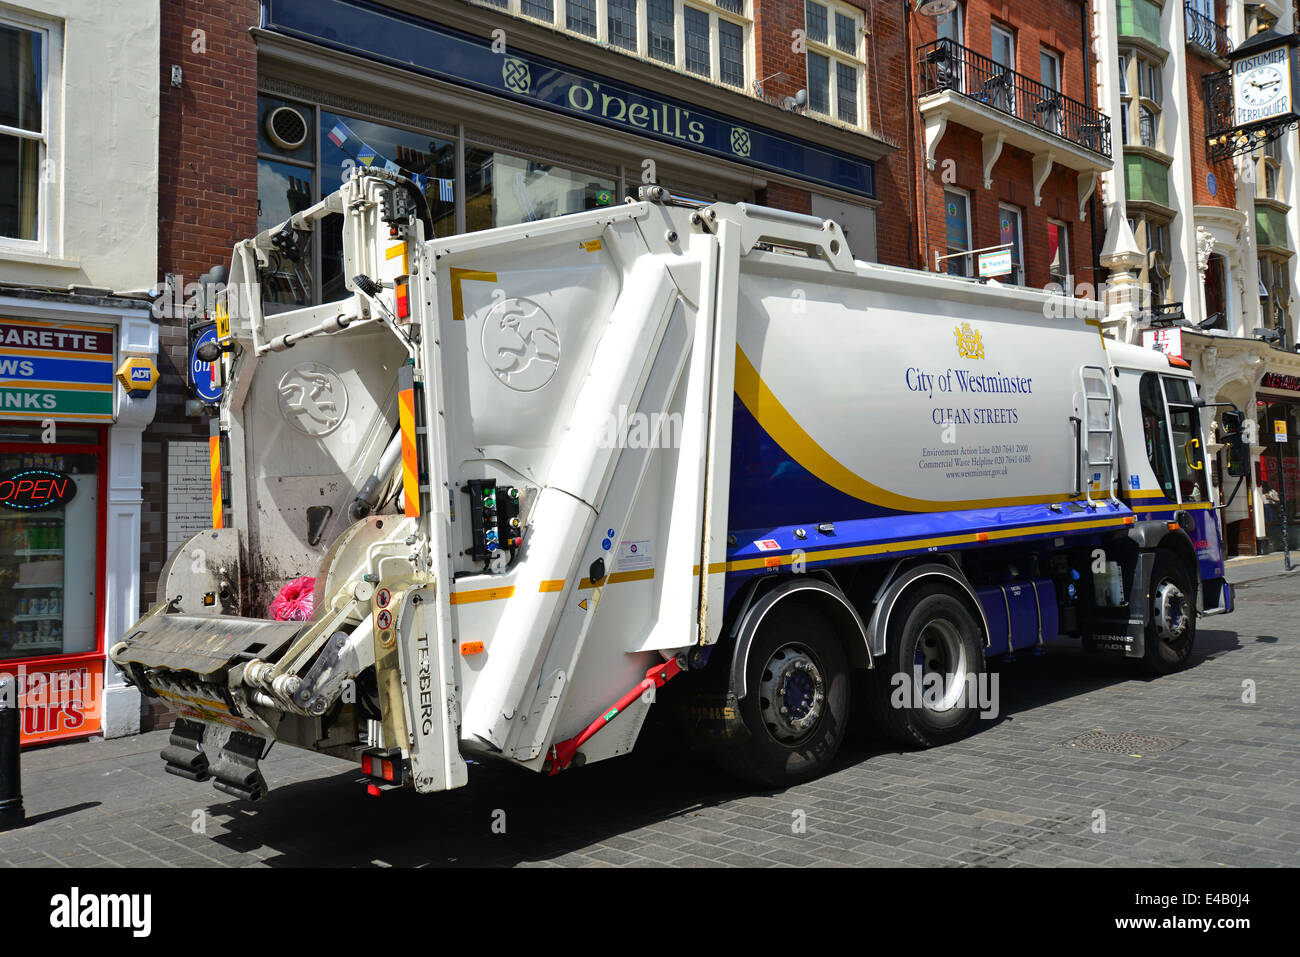 Rubbish truck collection in Wardour Street, Chinatown, West End, City of Westminster, London, England, United Kingdom Stock Photo